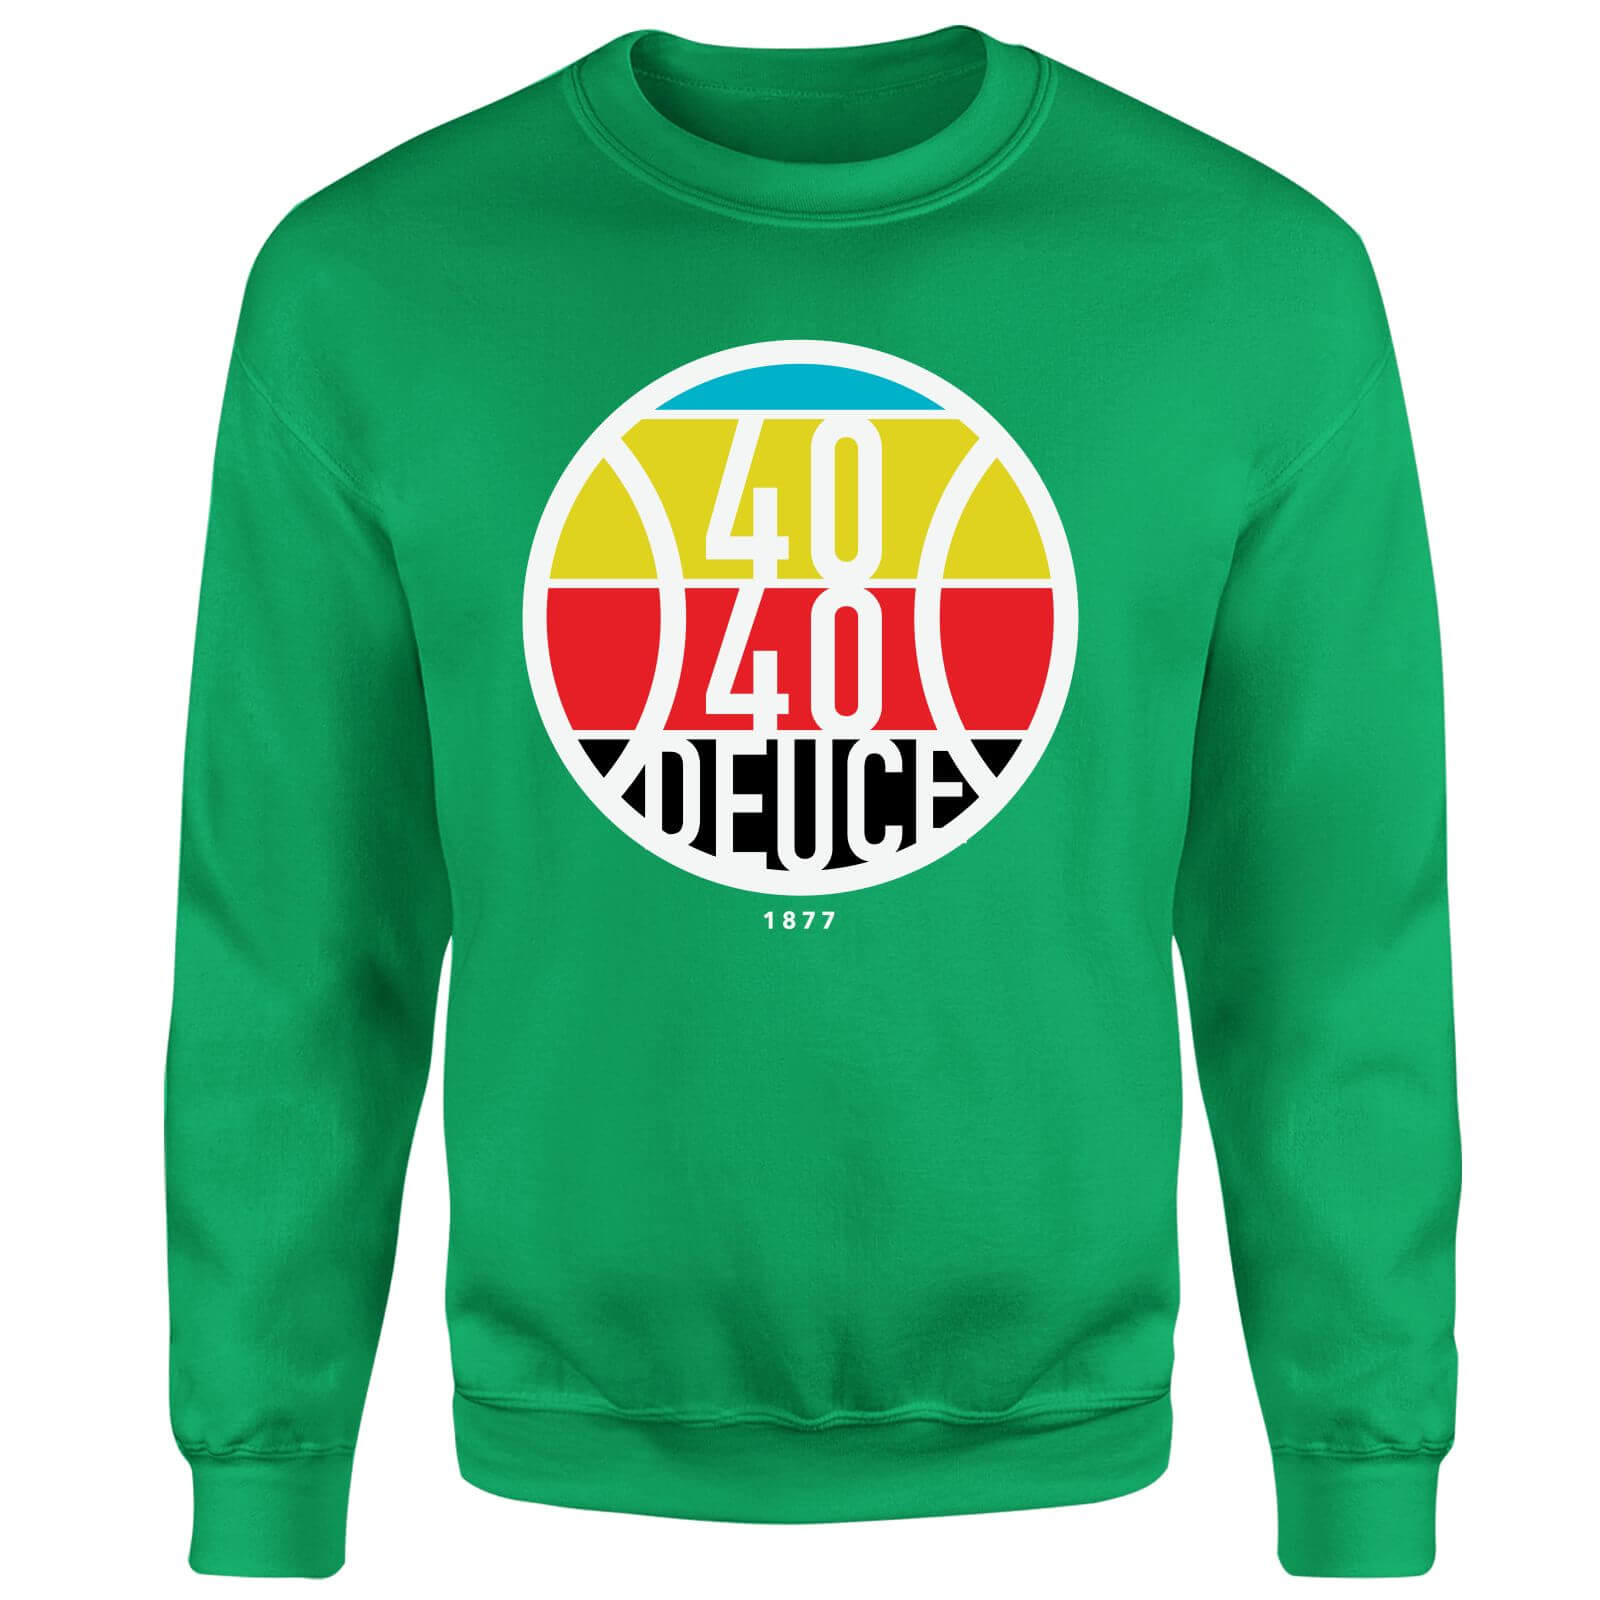 40 40 Deuce Sweatshirt - Kelly Green